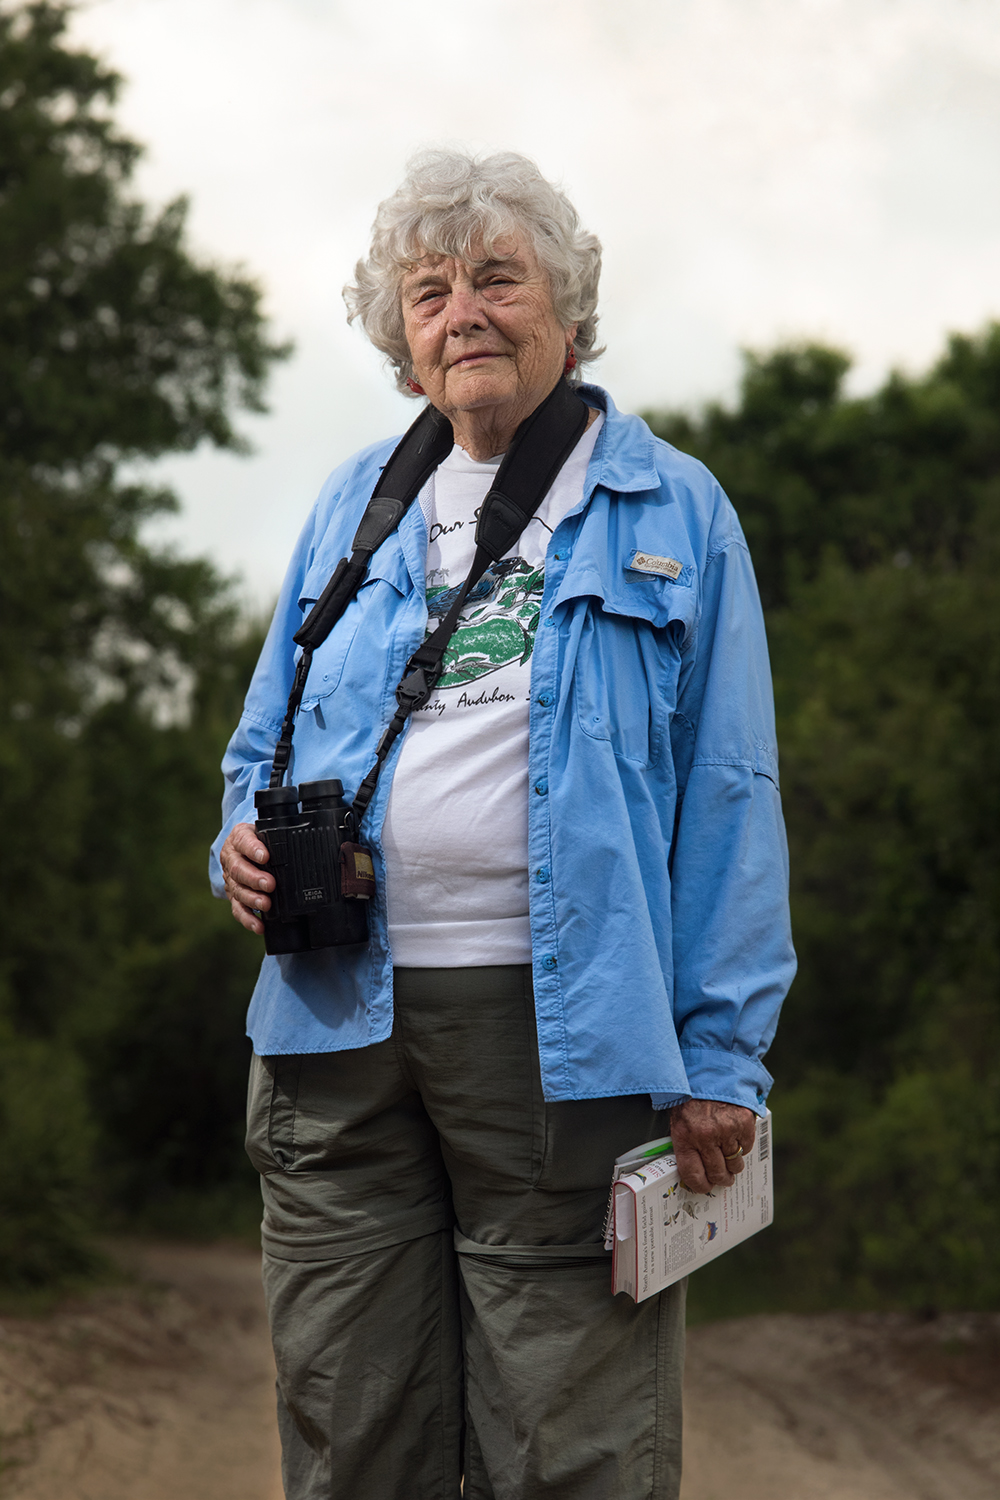 Helen Obenchain   C itizen Science Birder, Retired Educator, Volunteer   Archbold Biological Station  2015/4/10